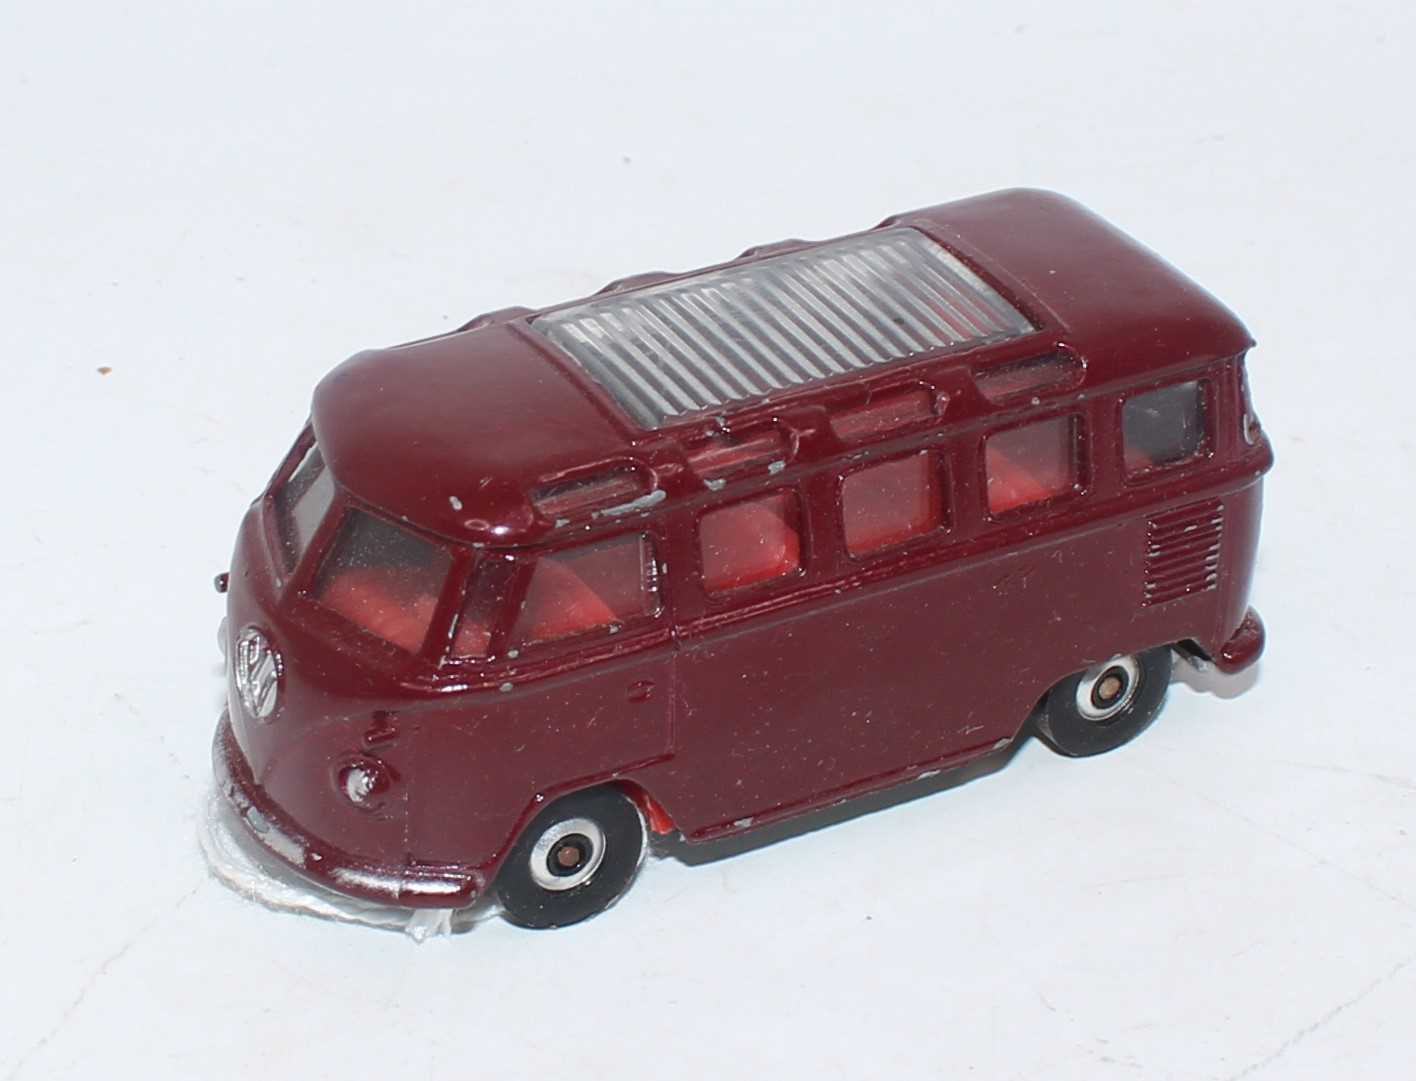 A Lonestar Road-Supercars series 1/59 scale model of a VW Microbus, finished in maroon with silver